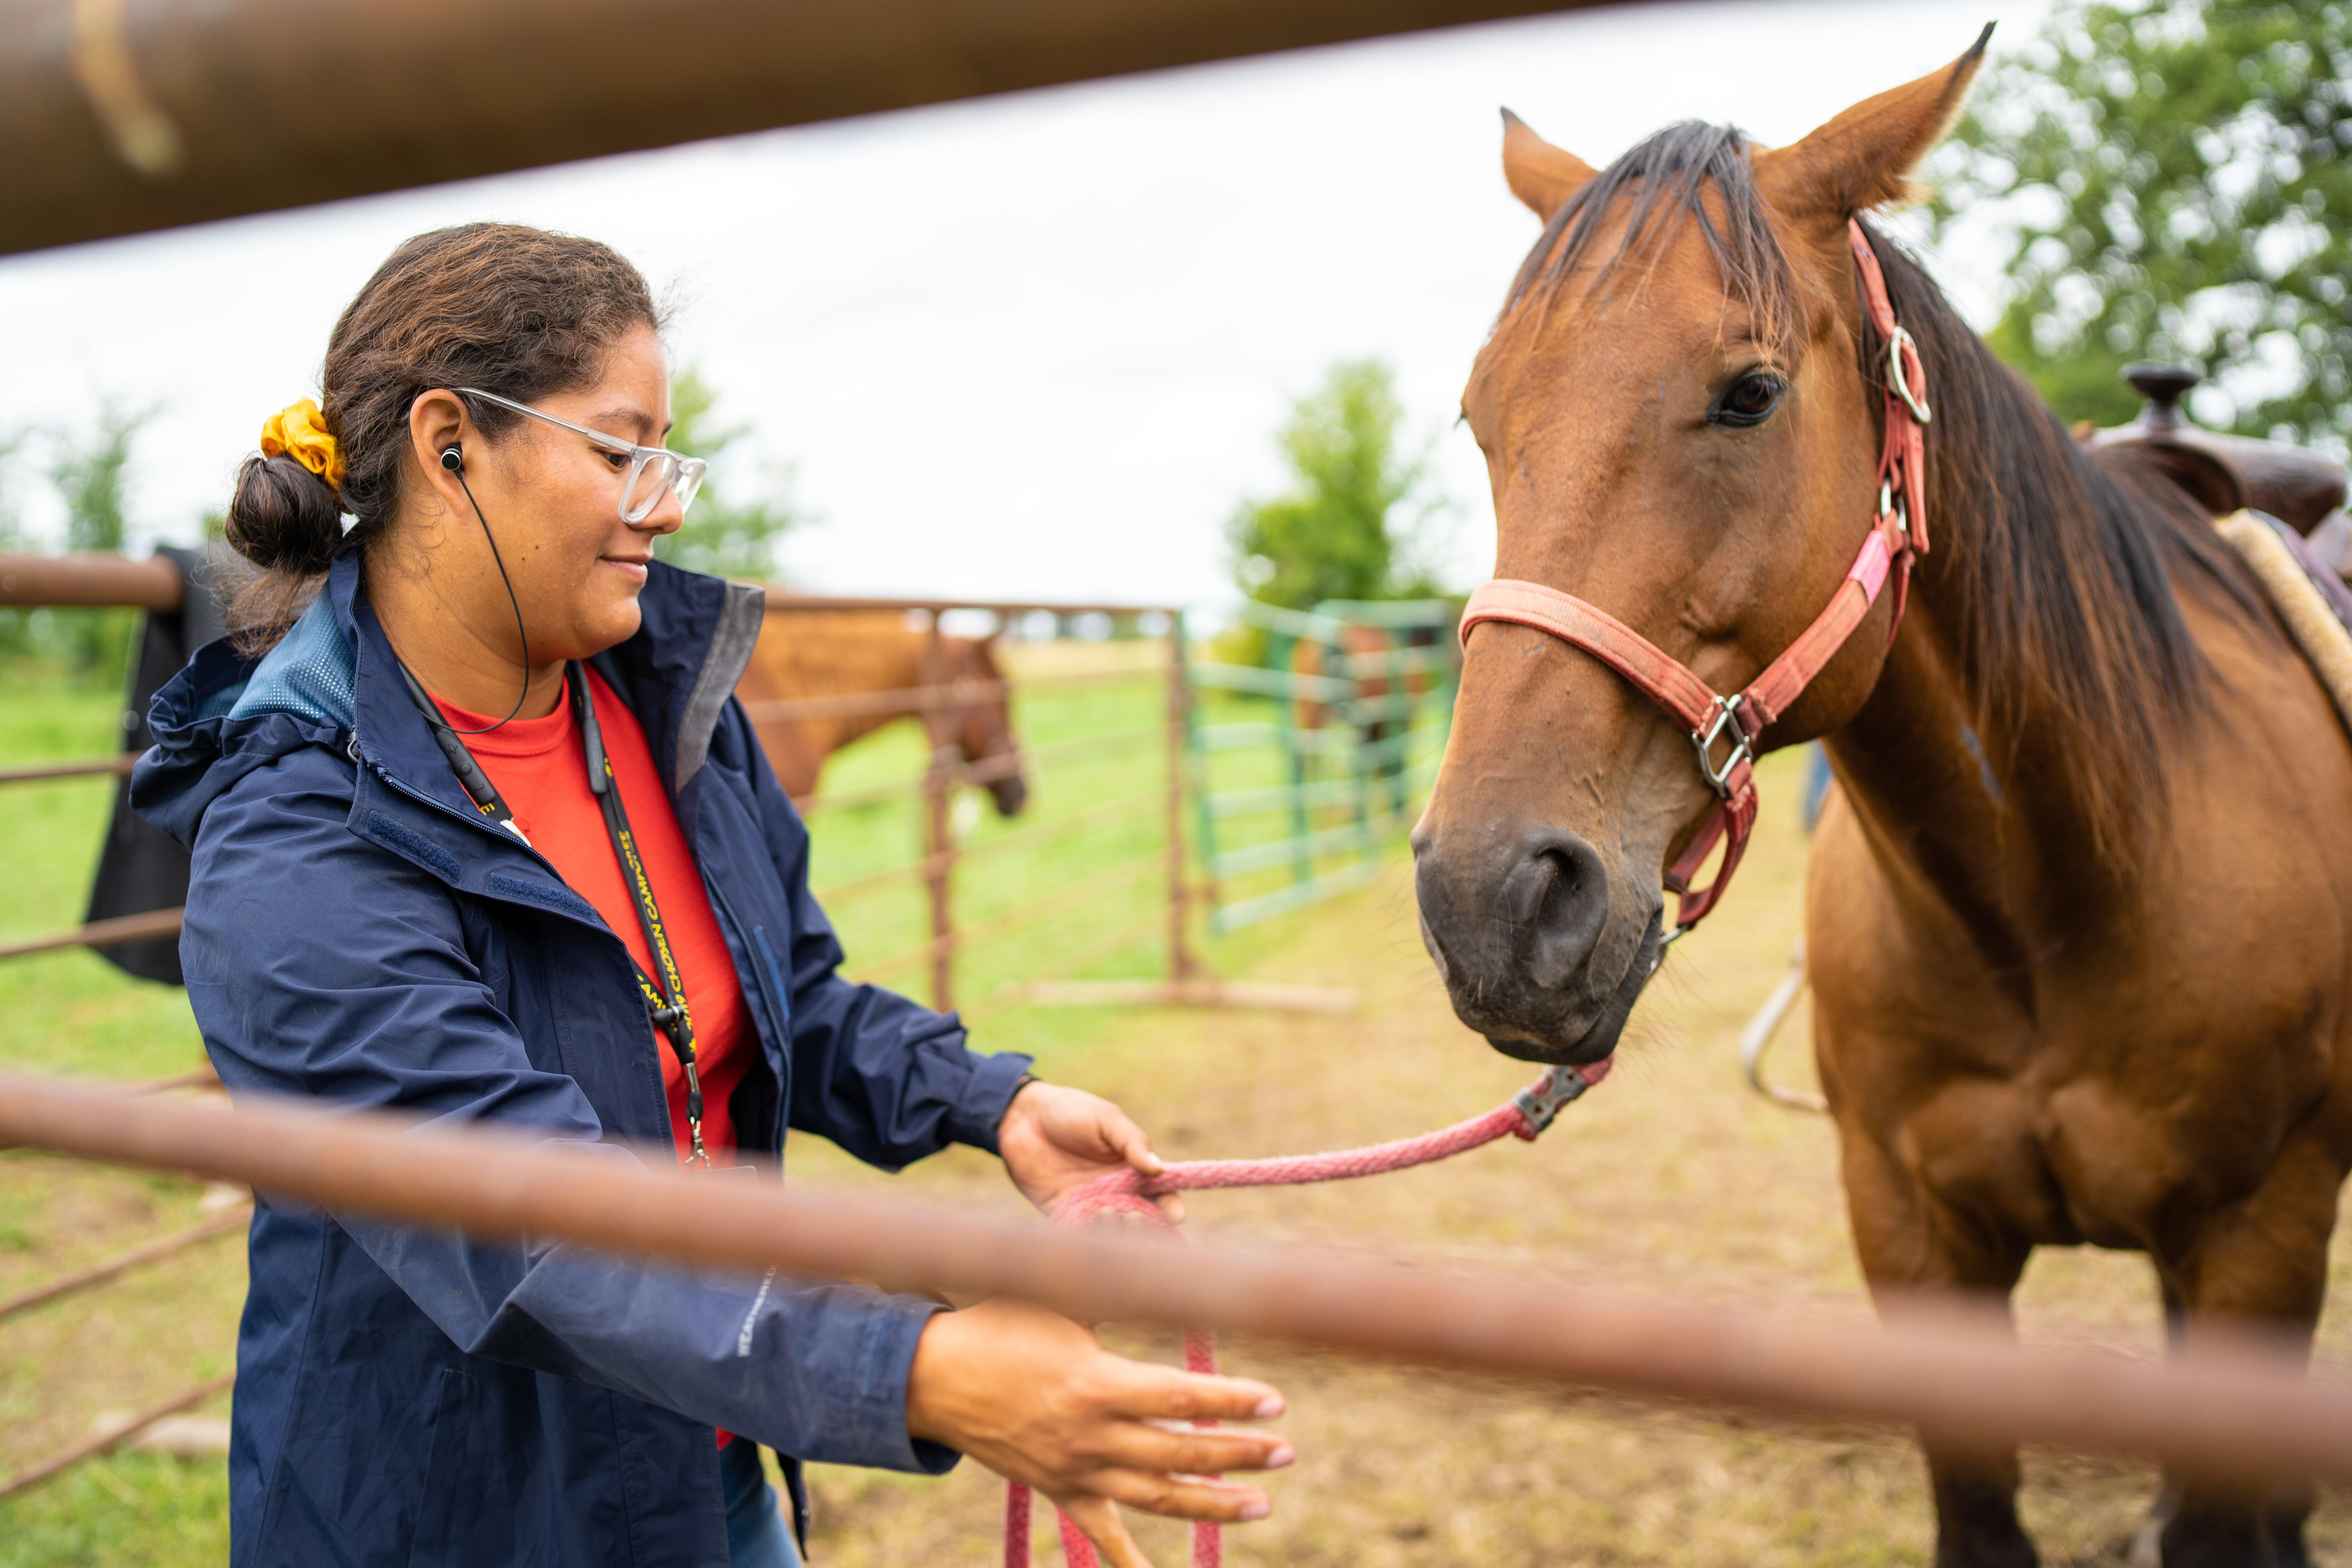 oshkosh 2019 Flor Dominguez of Keene SDA Church, in Texas leads her horse to the water. Conference: Texas Conference. Union - Southwest Union Terrence Bowen photo